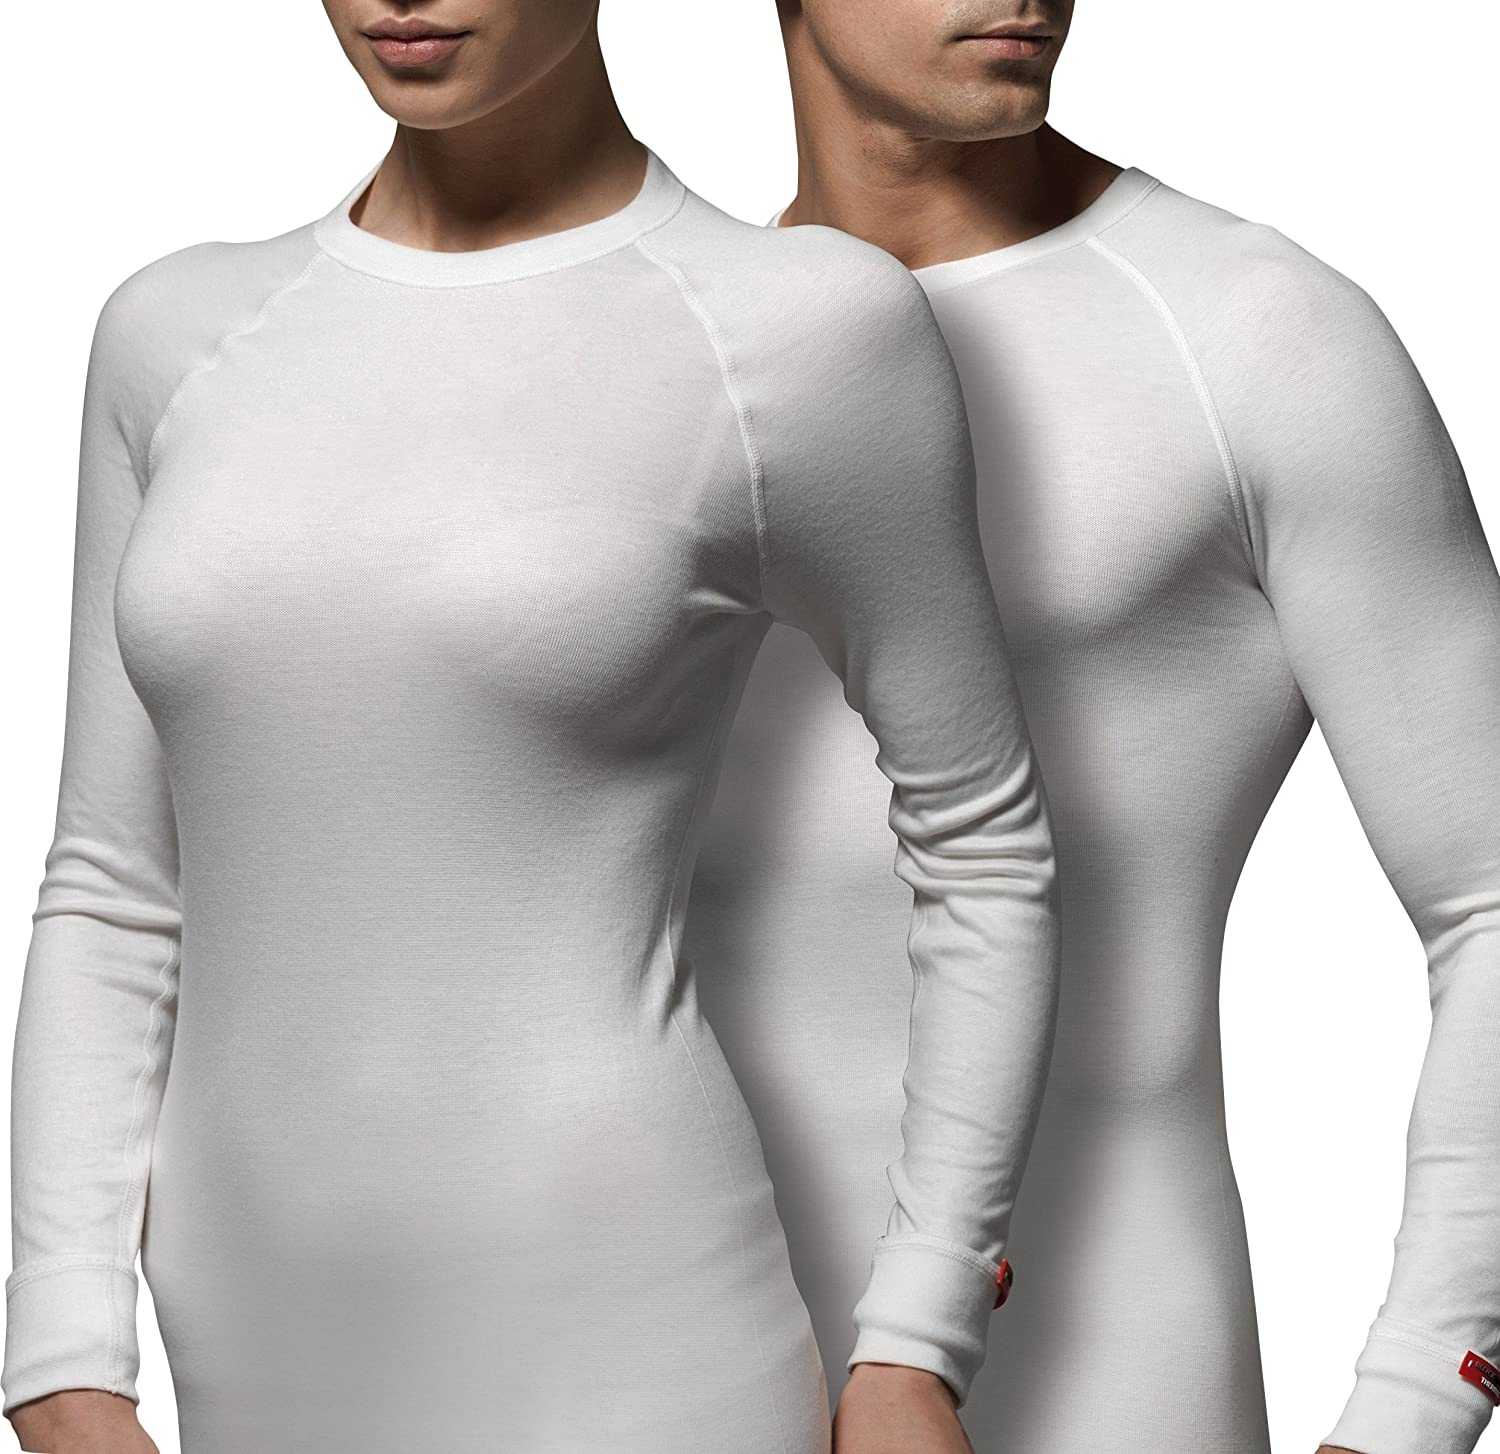 Blackspade Warm Winter Thermal Active Unisex T-Shirt with Long Sleeves White